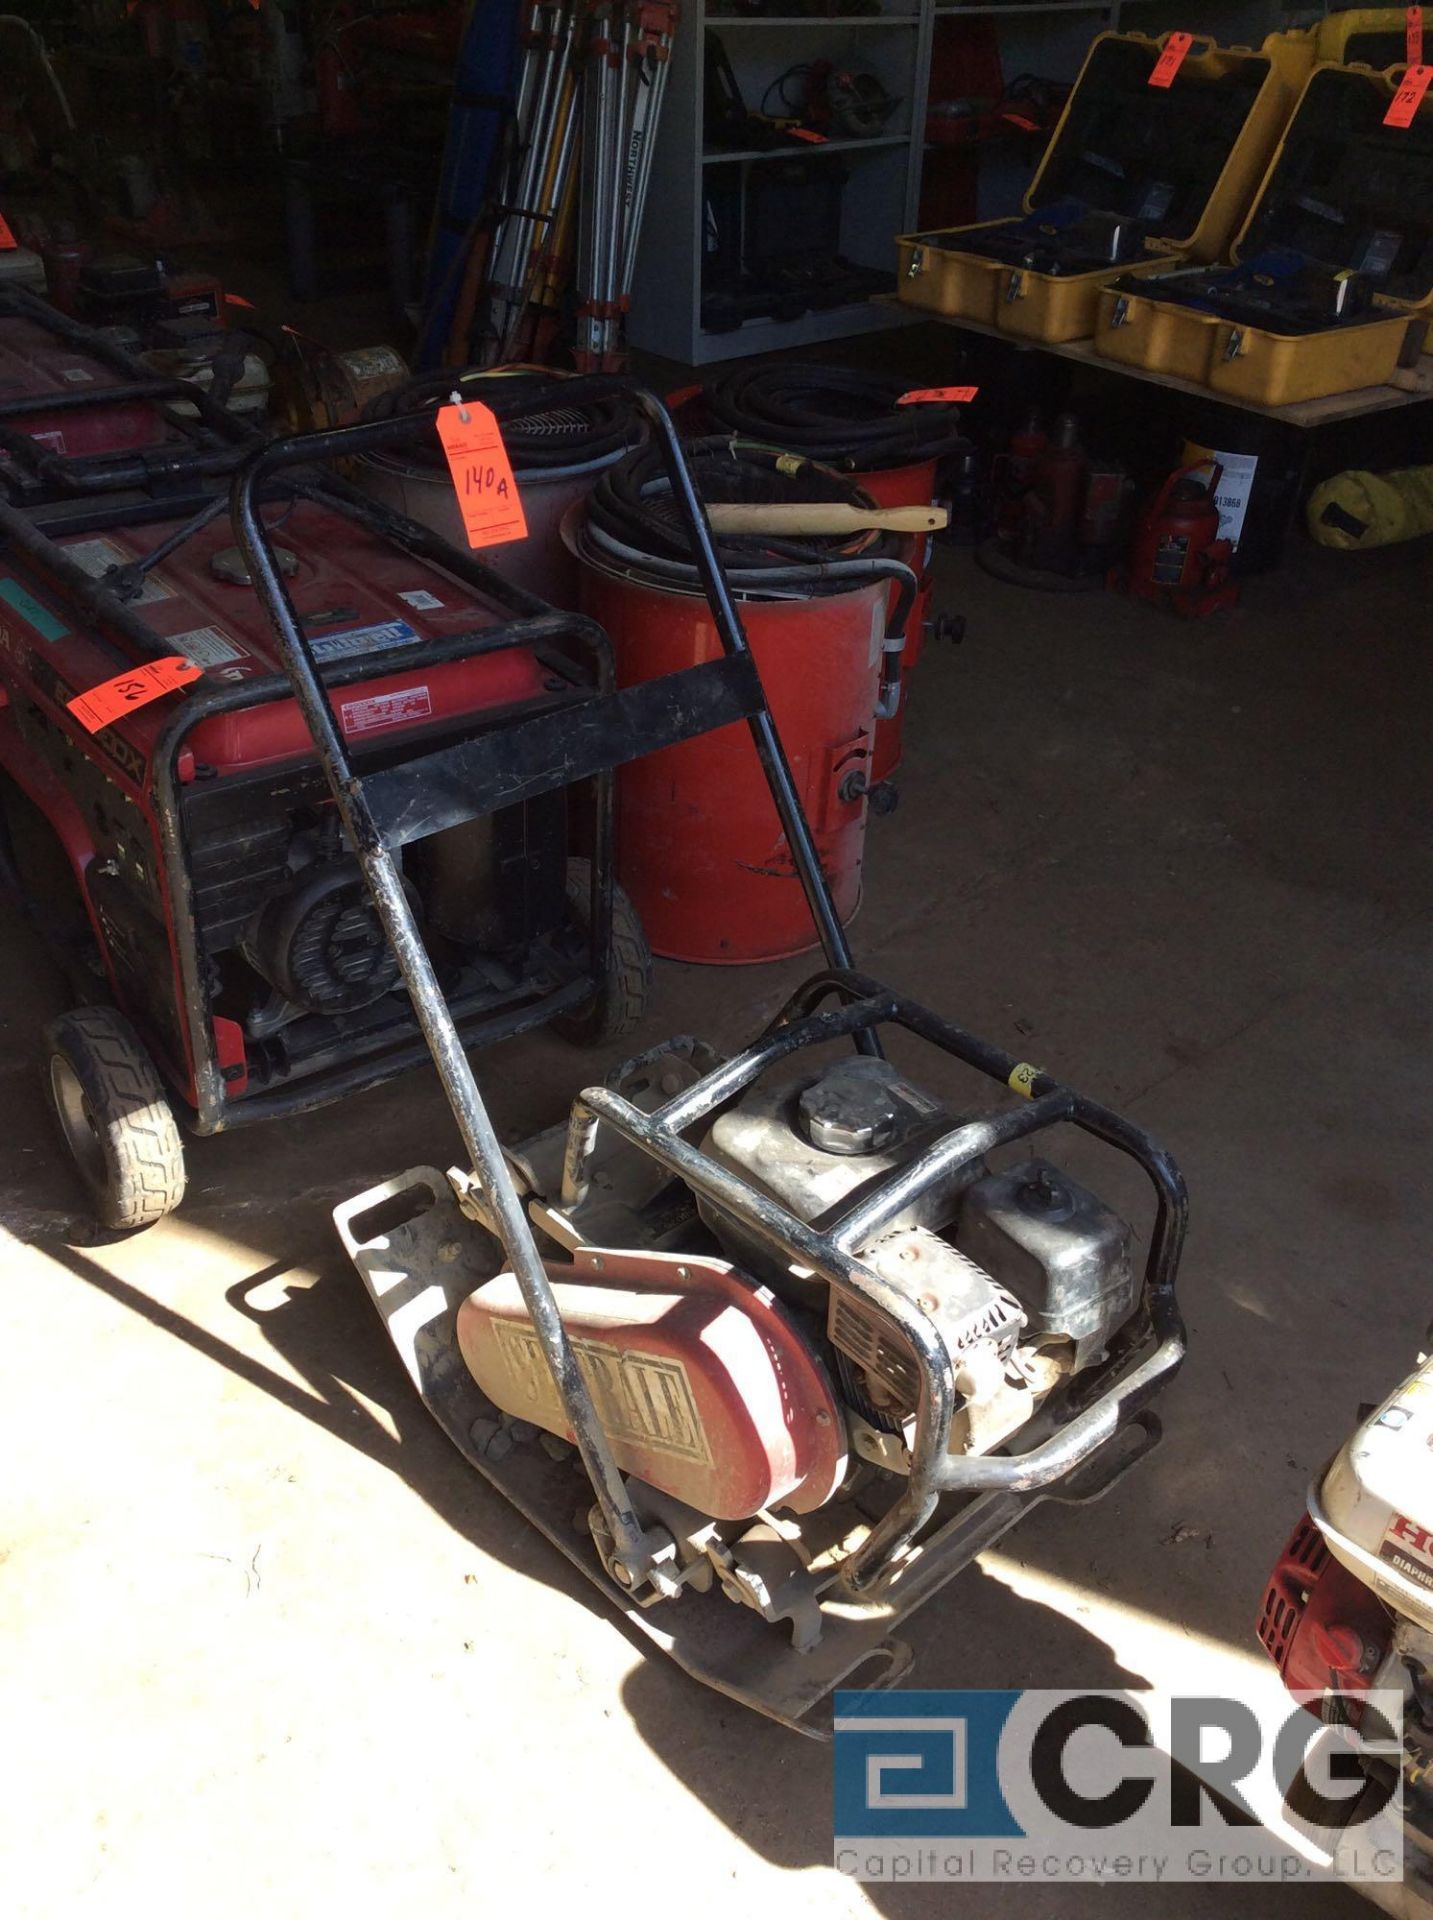 Lot 140A - Toro 68026 single direction plate compactor, with Honda GX160 motor